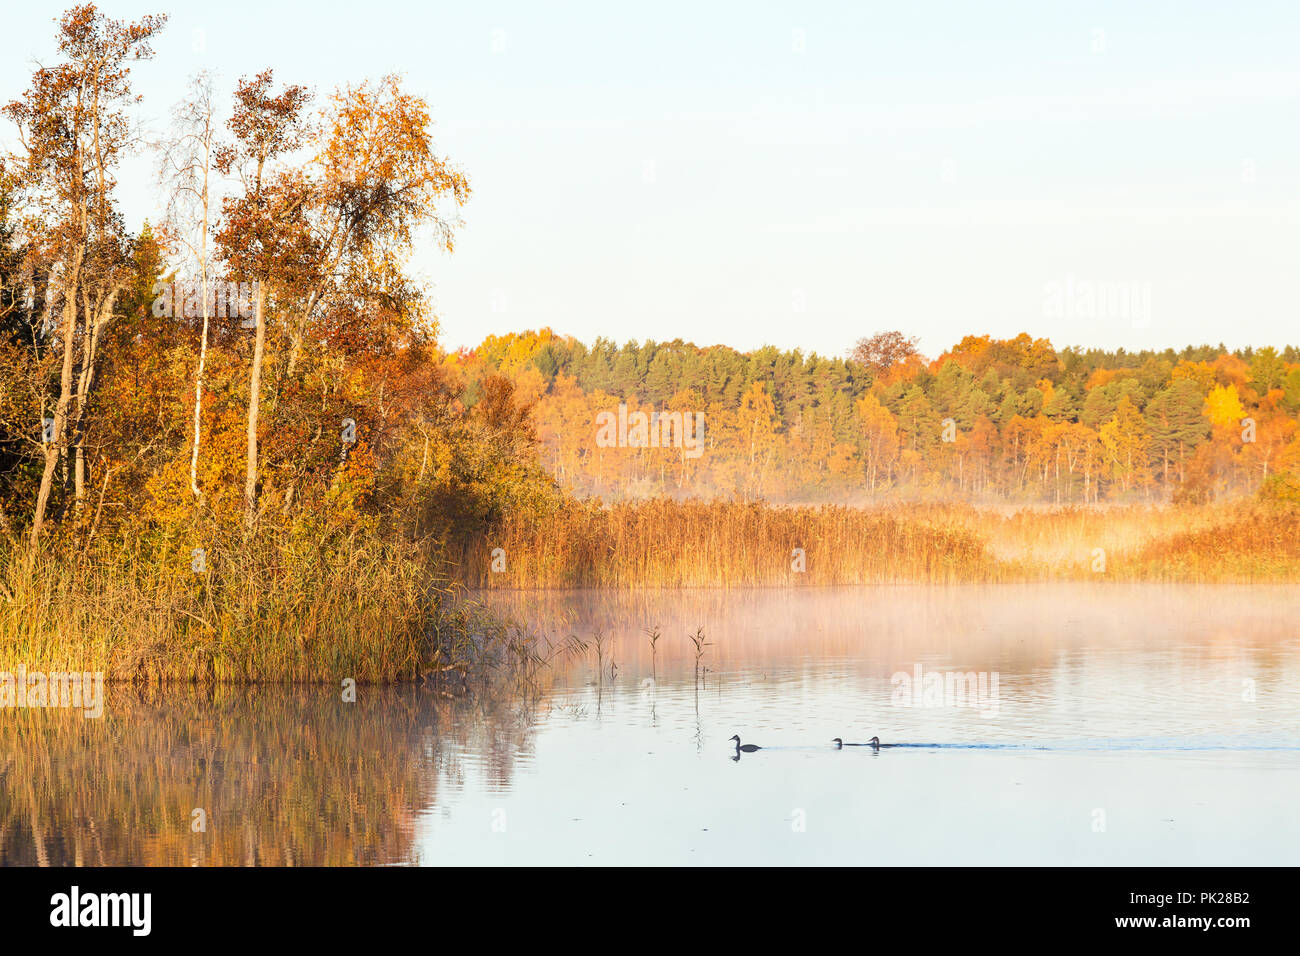 Great Crested Grebes swimming in dawn the mist on the lake in the autumn - Stock Image